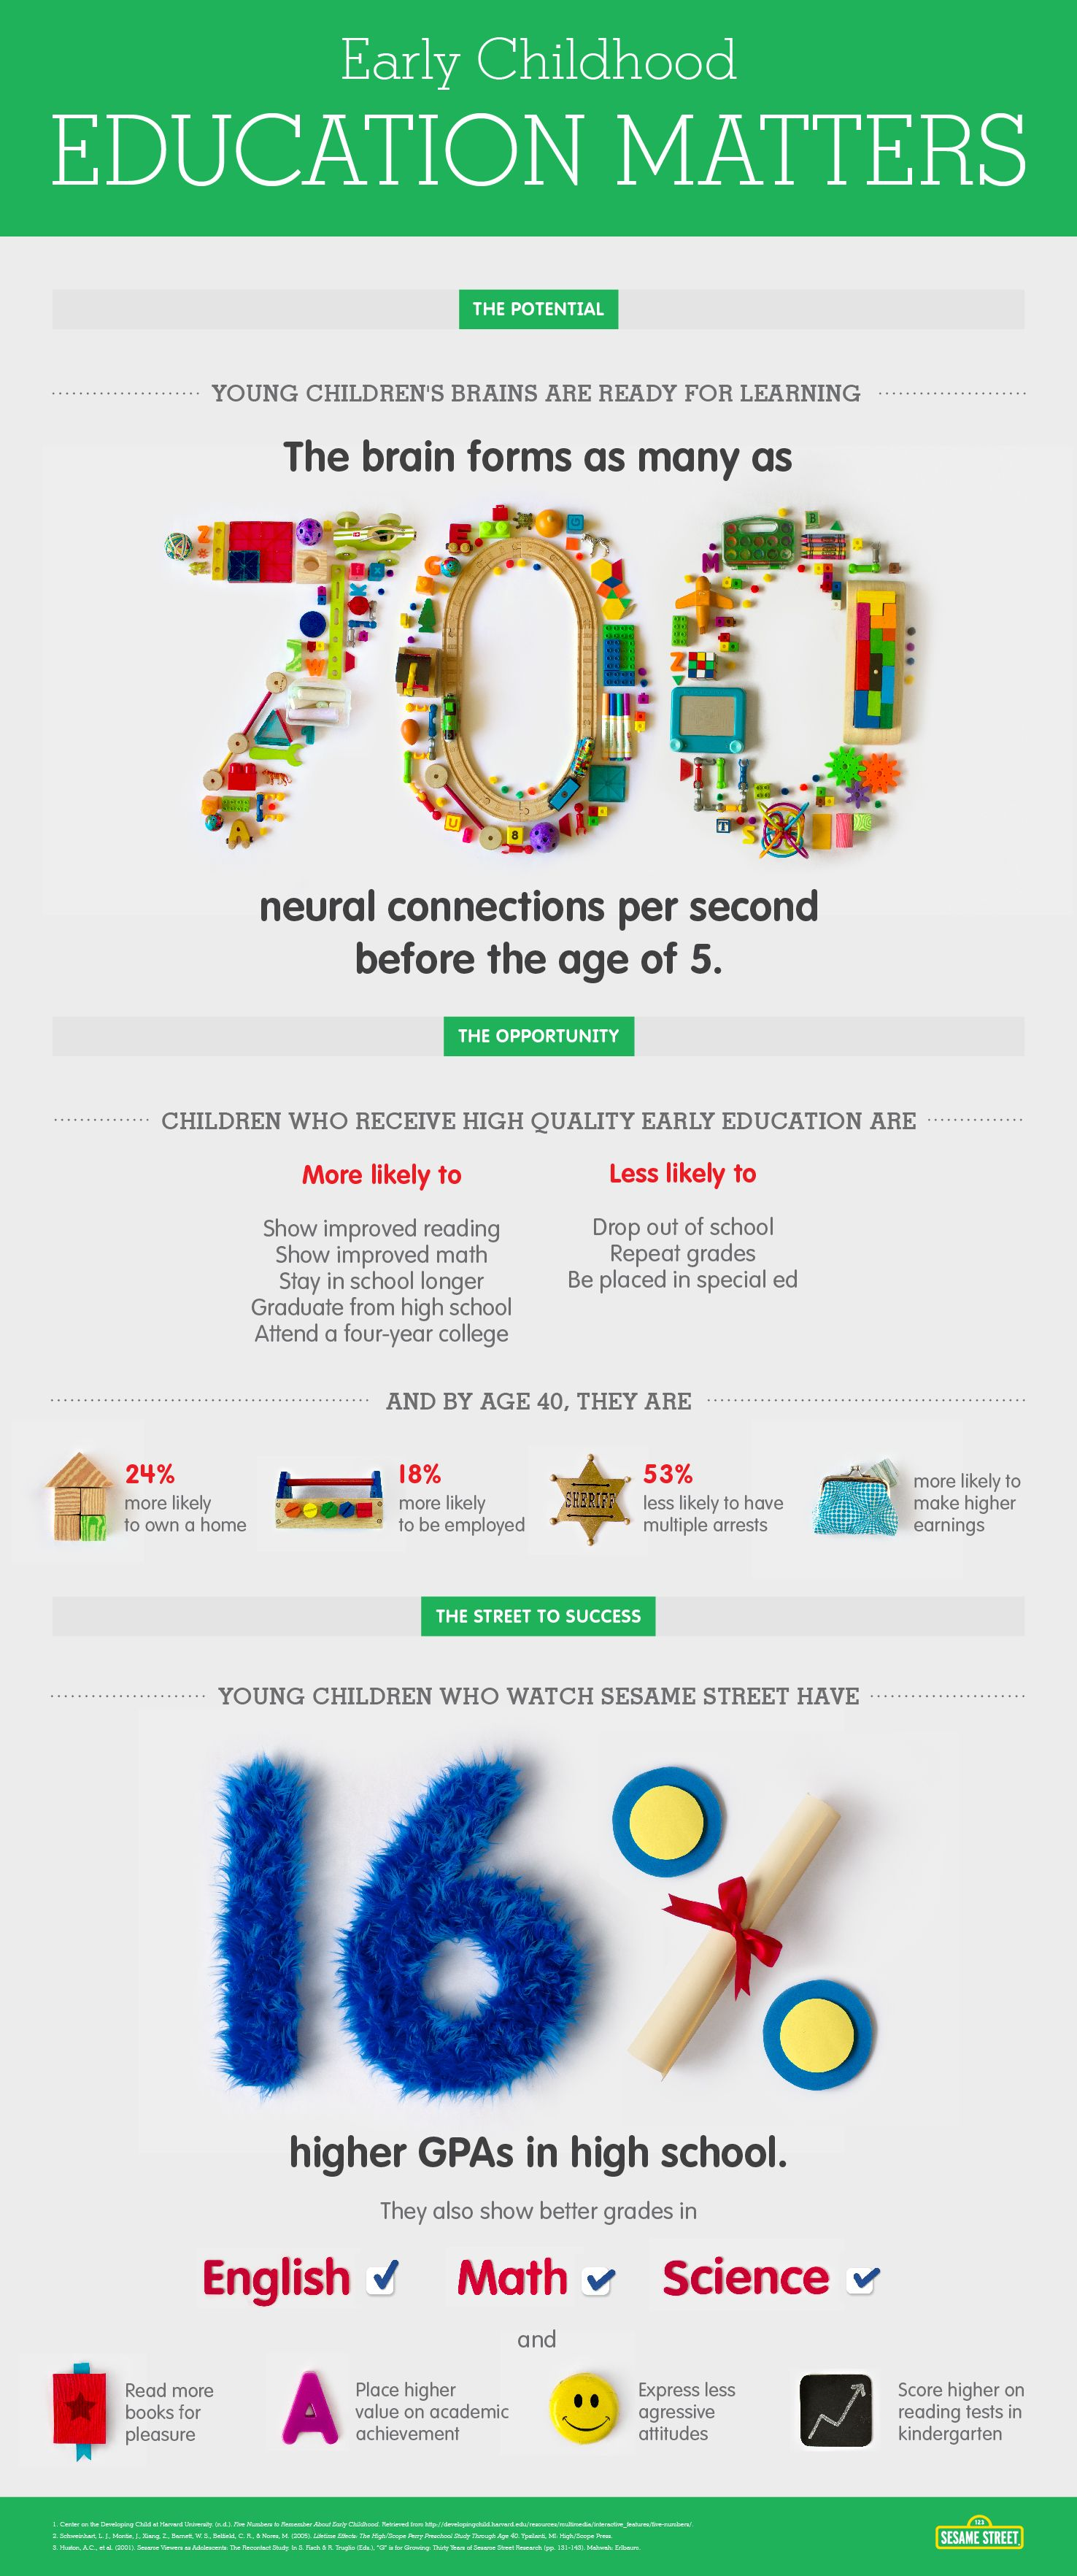 early childhood education matters infographic great info for early childhood education matters infographic great info for educational organizations advocating for young children